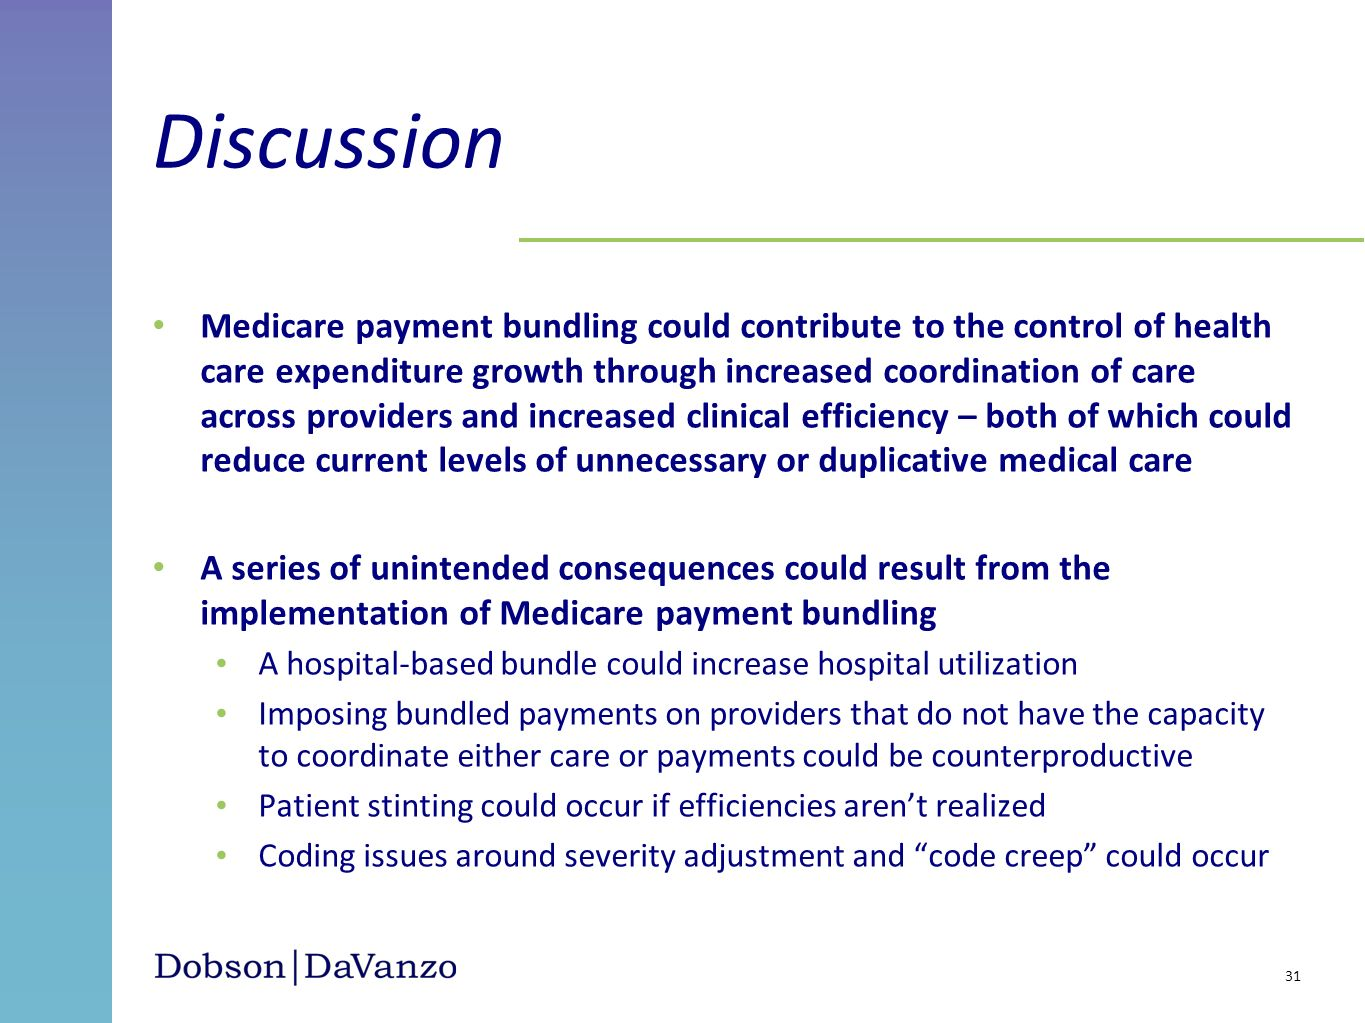 Medicare payment bundling could contribute to the control of health care expenditure growth through increased coordination of care across providers an